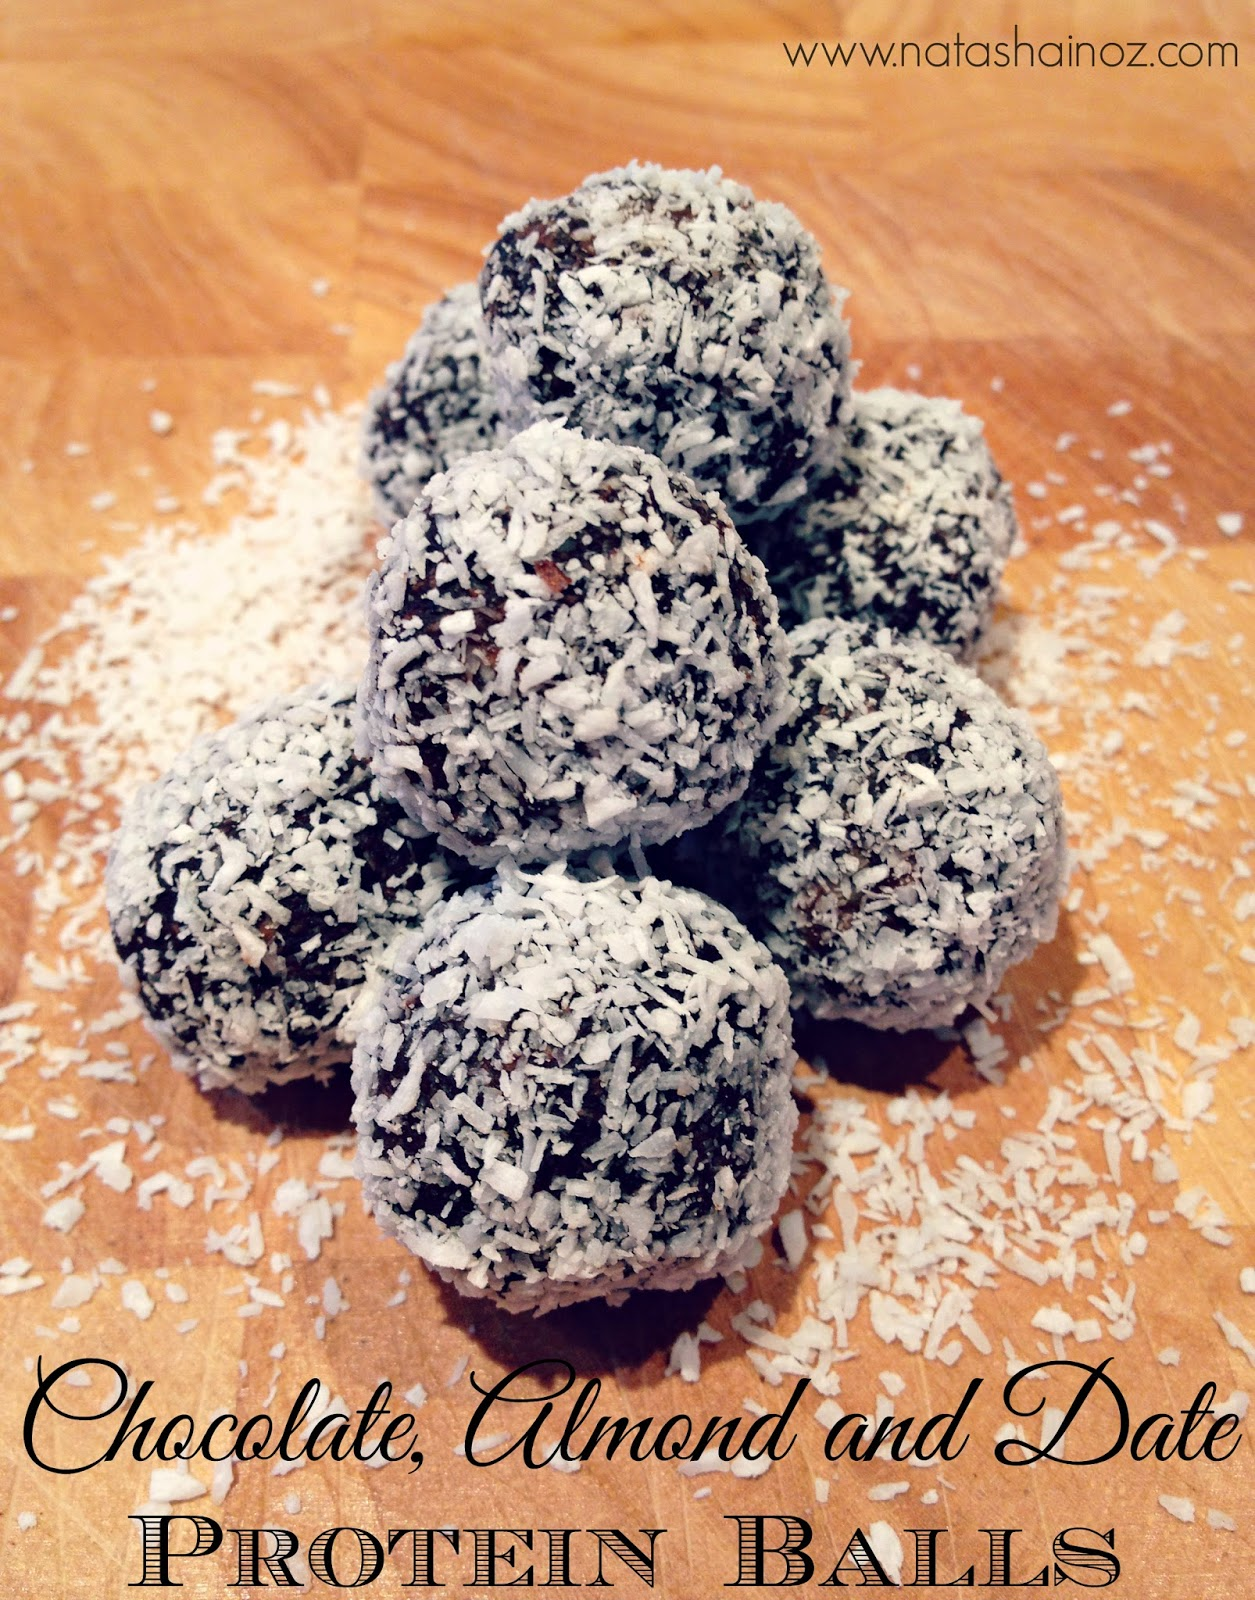 Chocolate Almond and Date Protein Balls via www.natashainoz.com